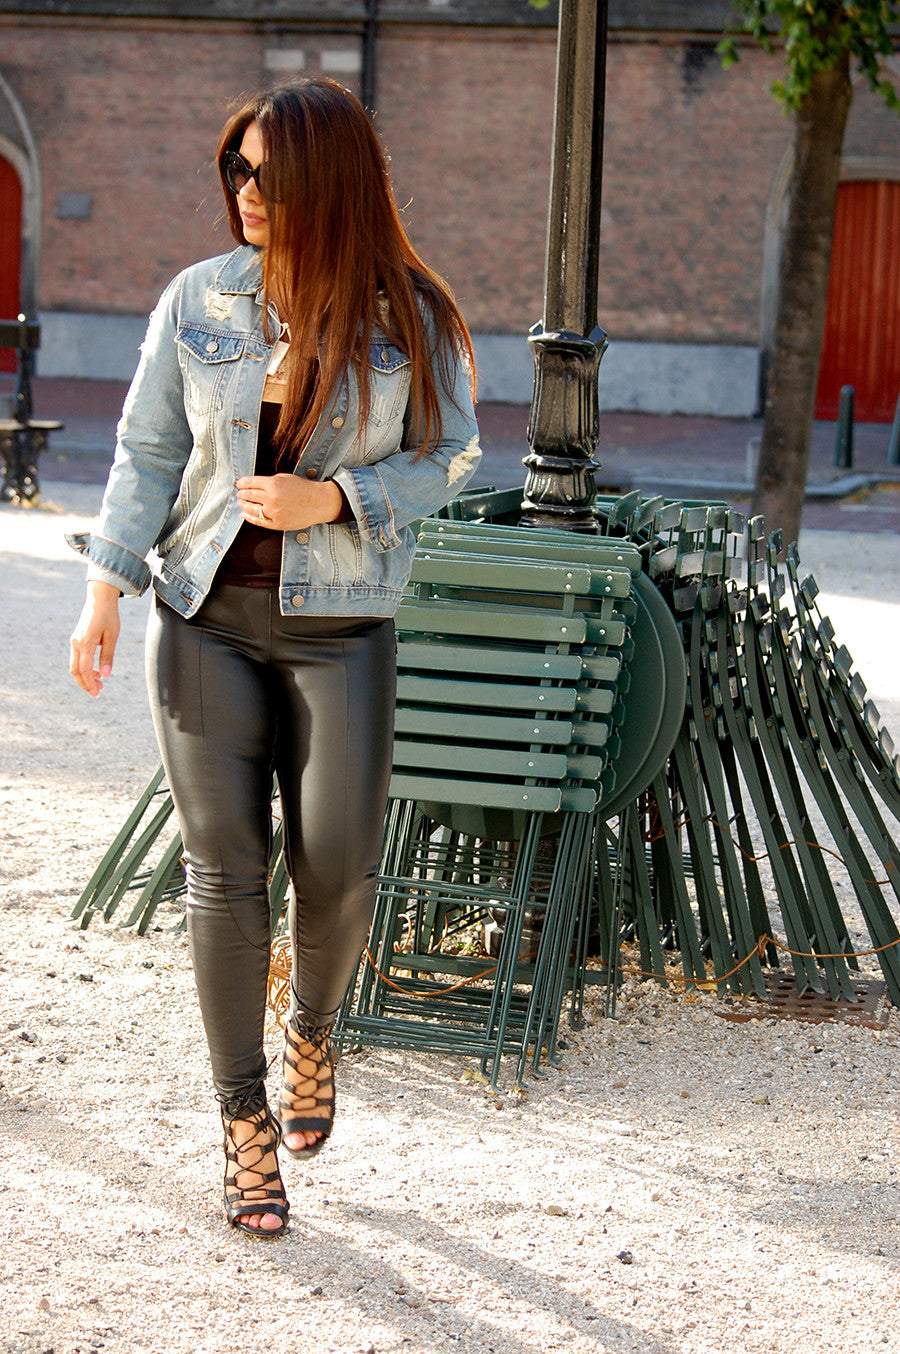 Parisienne style high waist leather pants. Fashion must have.